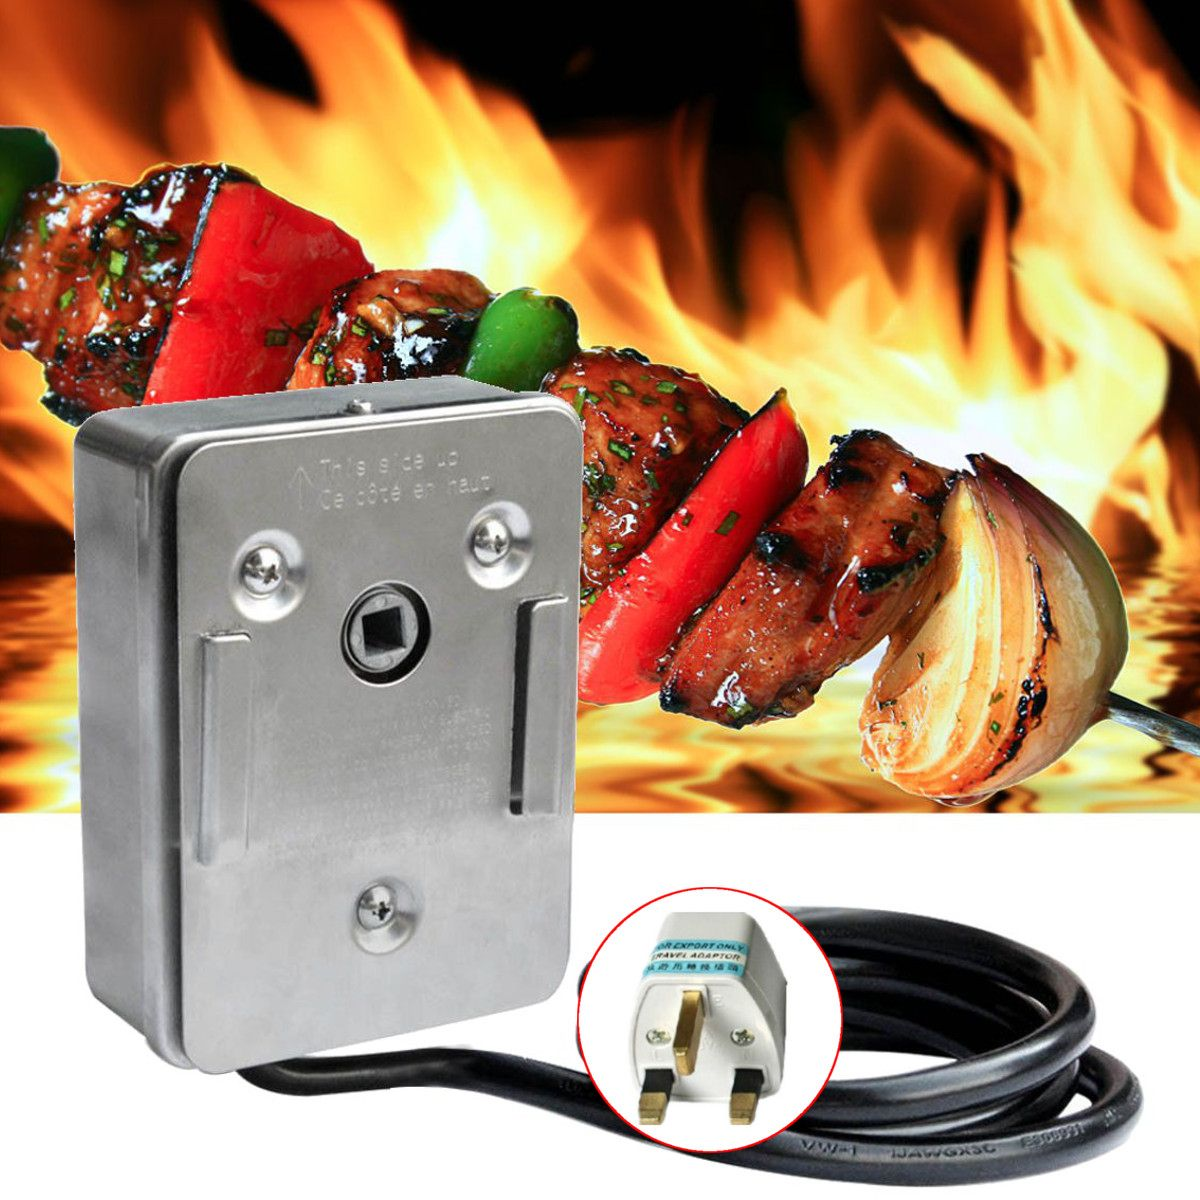 220V Onlyfire Universal Grill Electric Replacement BBQ Grill Heavy   Stainless Steel Rotisserie Motor Electric Motor220V Onlyfire Universal Grill Electric Replacement BBQ Grill Heavy   Stainless Steel Rotisserie Motor Electric Motor